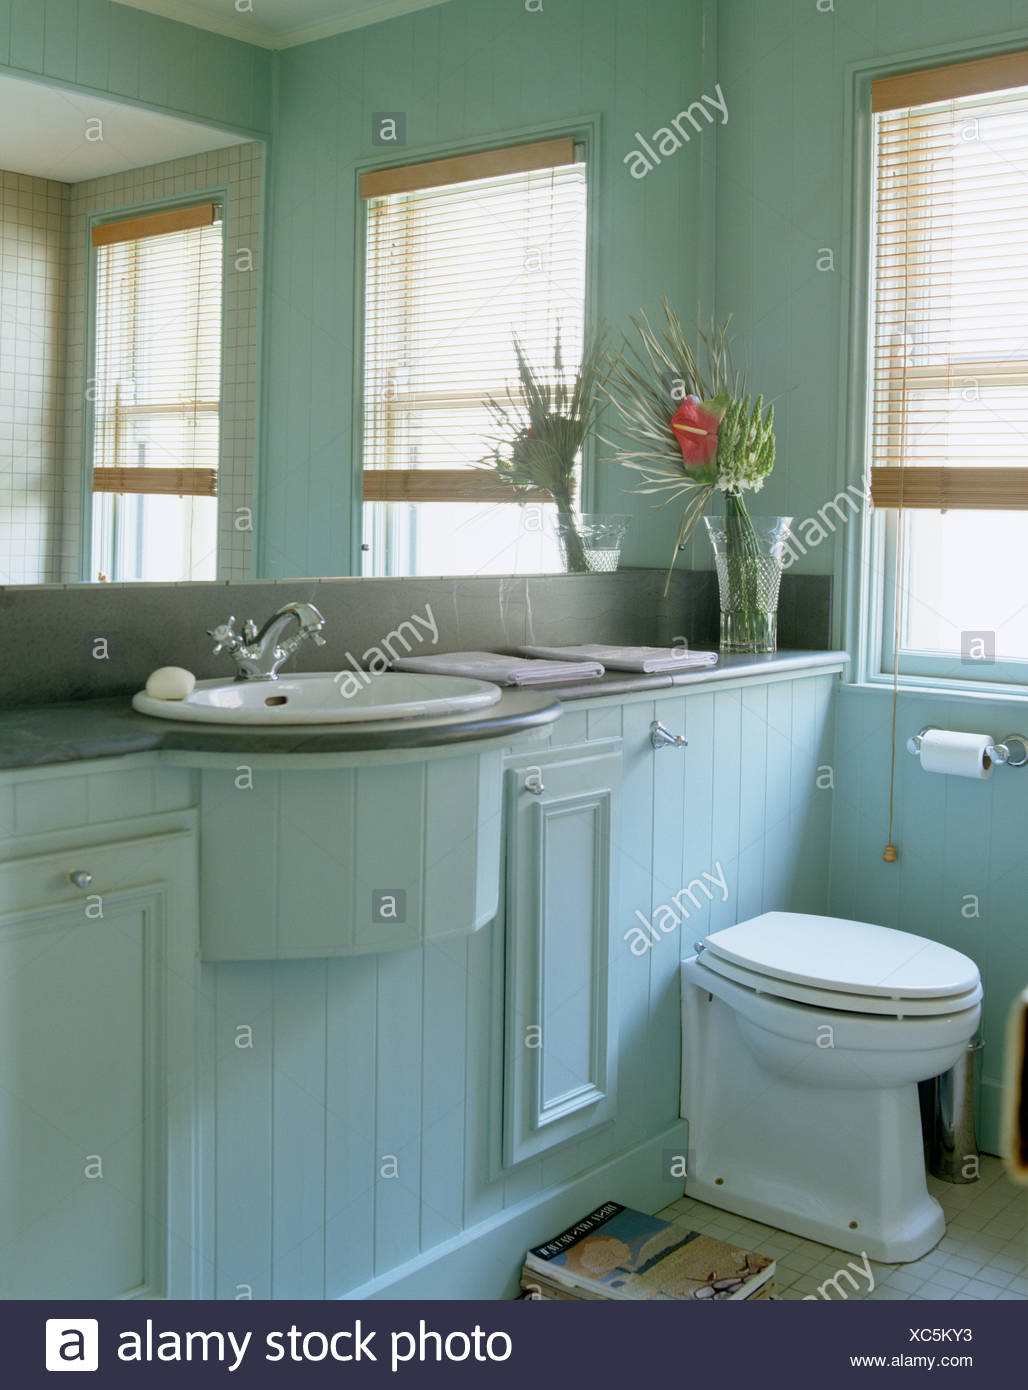 Mirrored Wall Above Basin And Toilet In Tongue Groove Paneled Vanity Unit In Pale Blue Country Bathroom Stock Photo Alamy